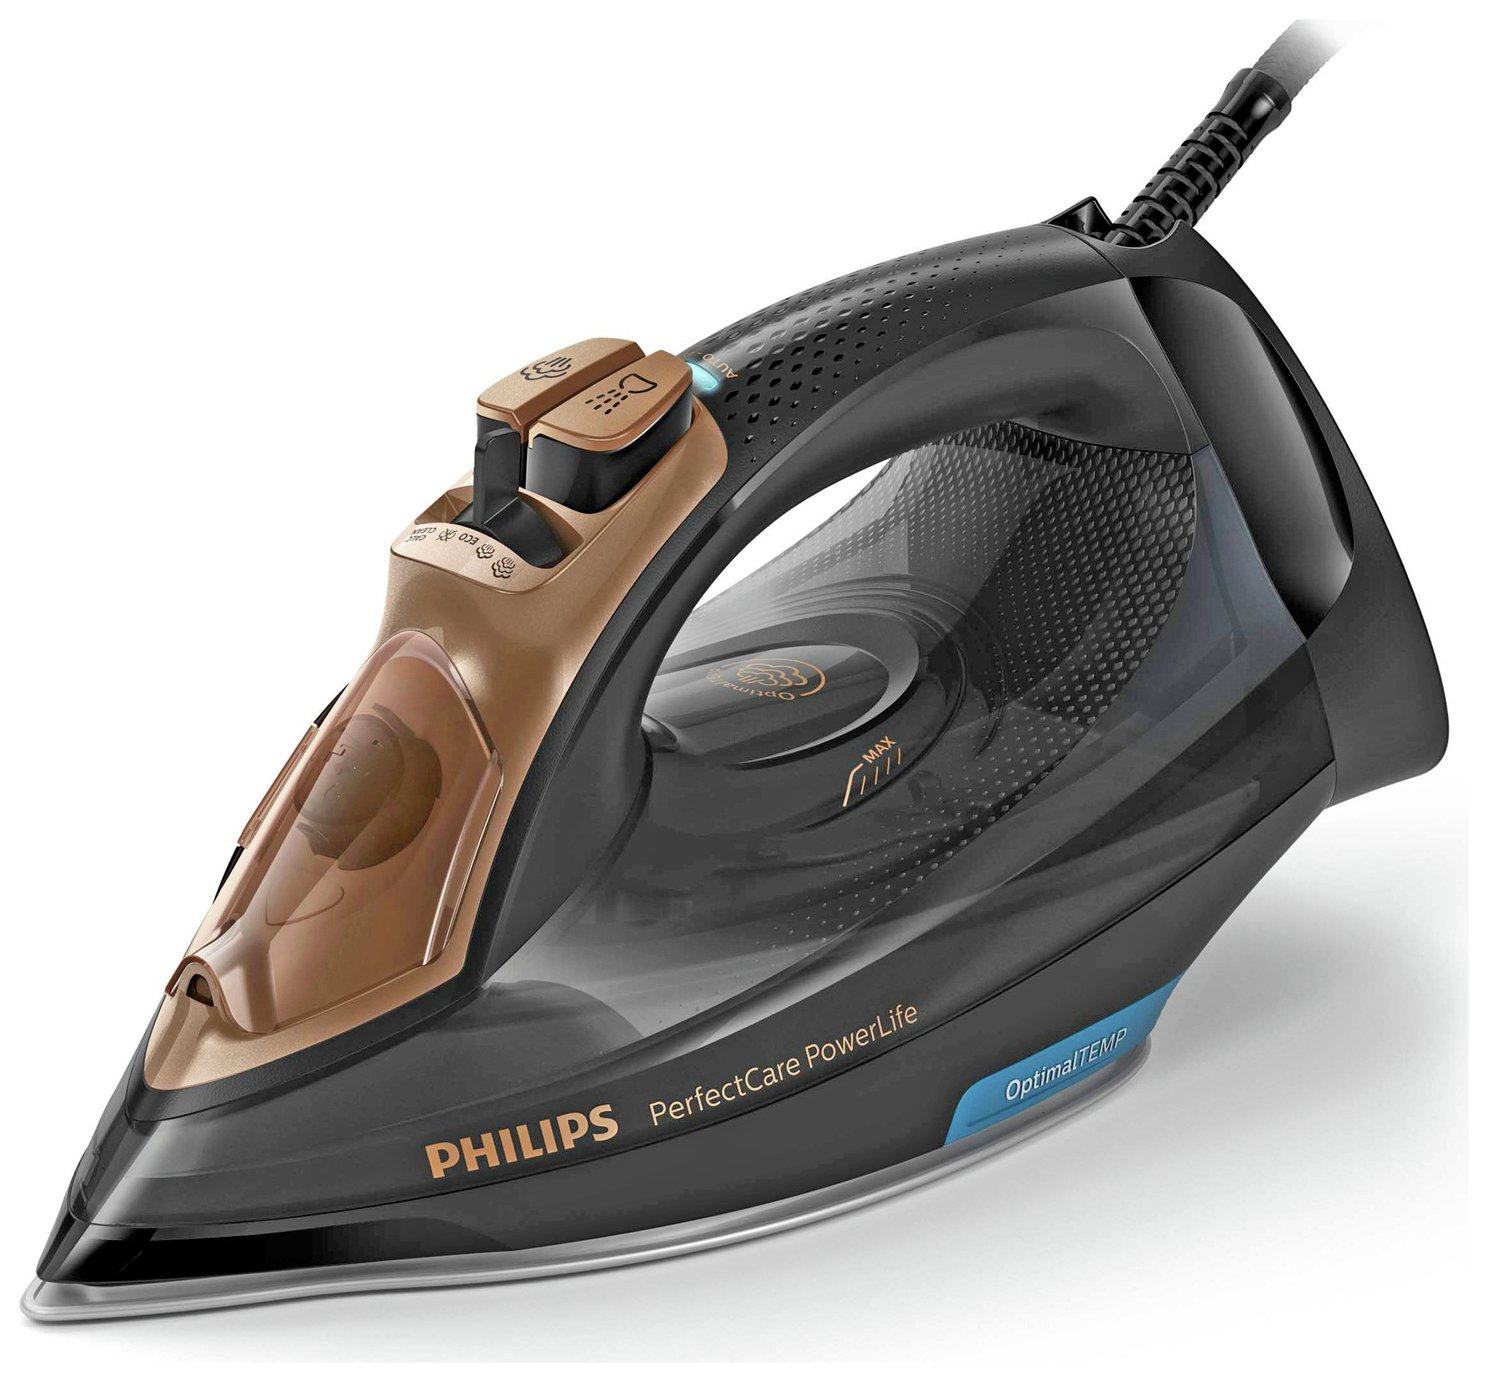 Philips GC3929/66 Perfectcare Powerlife OneTemp Steam Iron